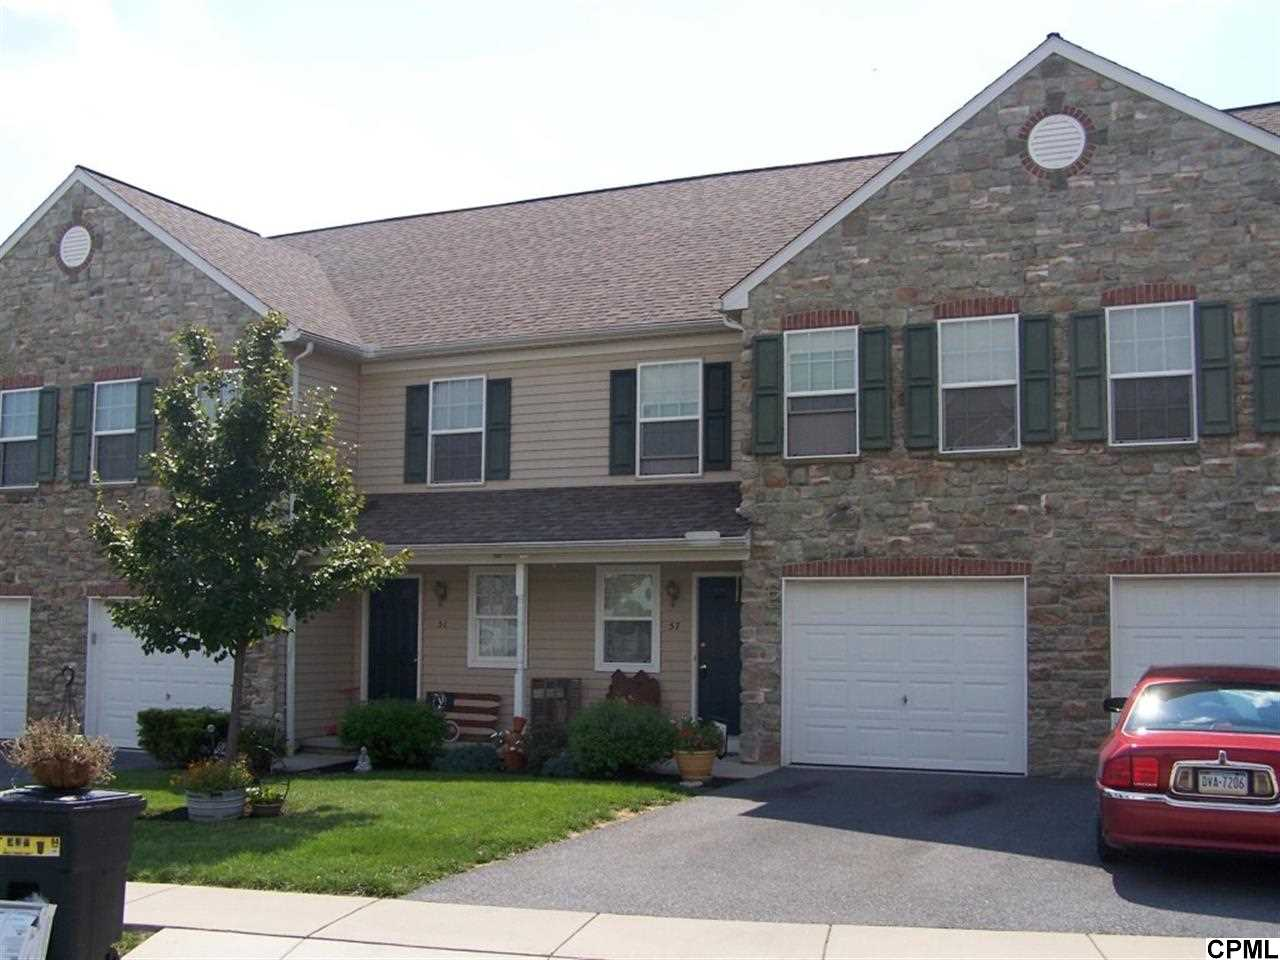 57 N Village Cir, Palmyra, PA 17078